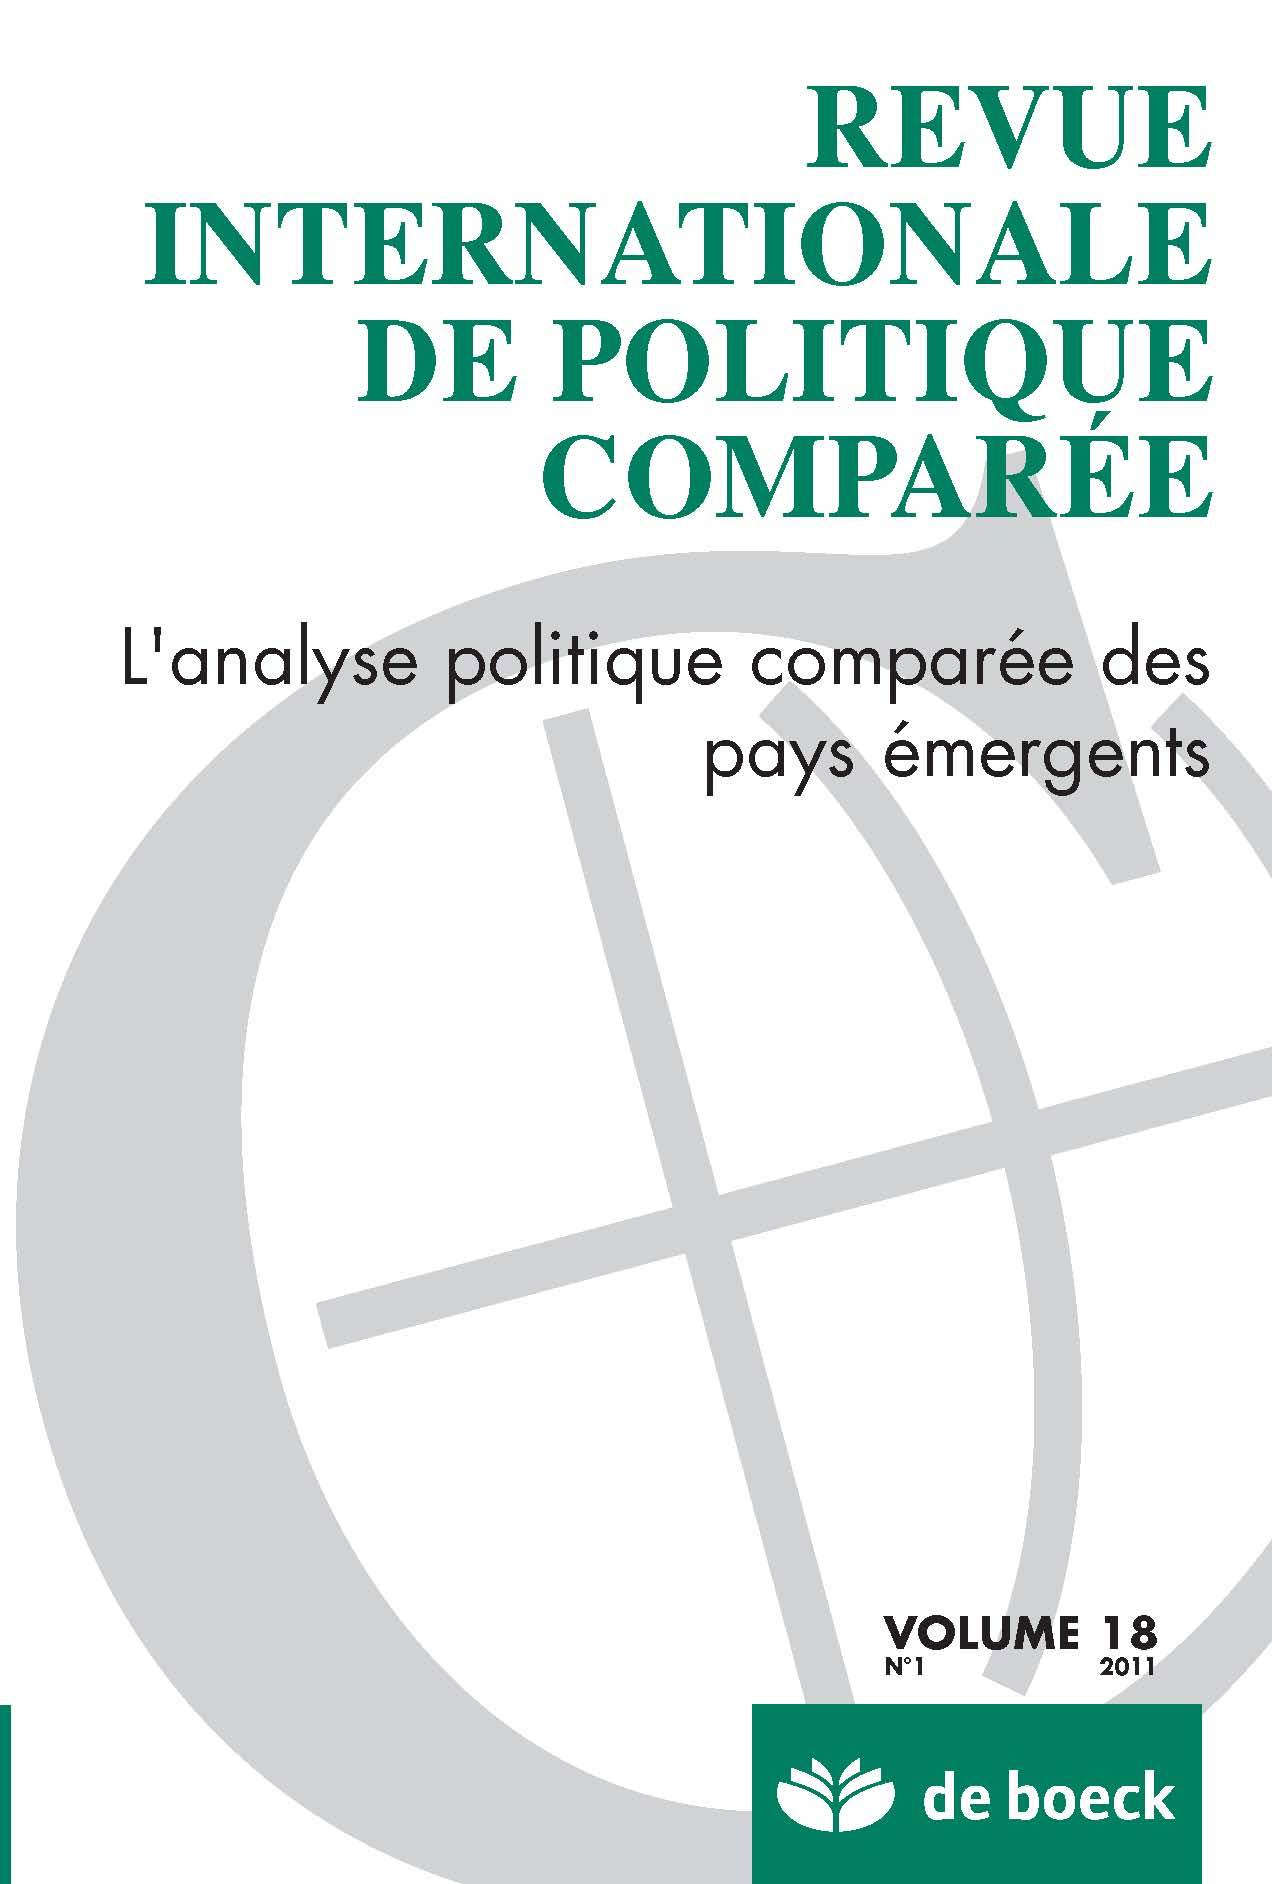 REVUE INTERNATIONALE DE POLITIQUE COMPAREE 2011/1